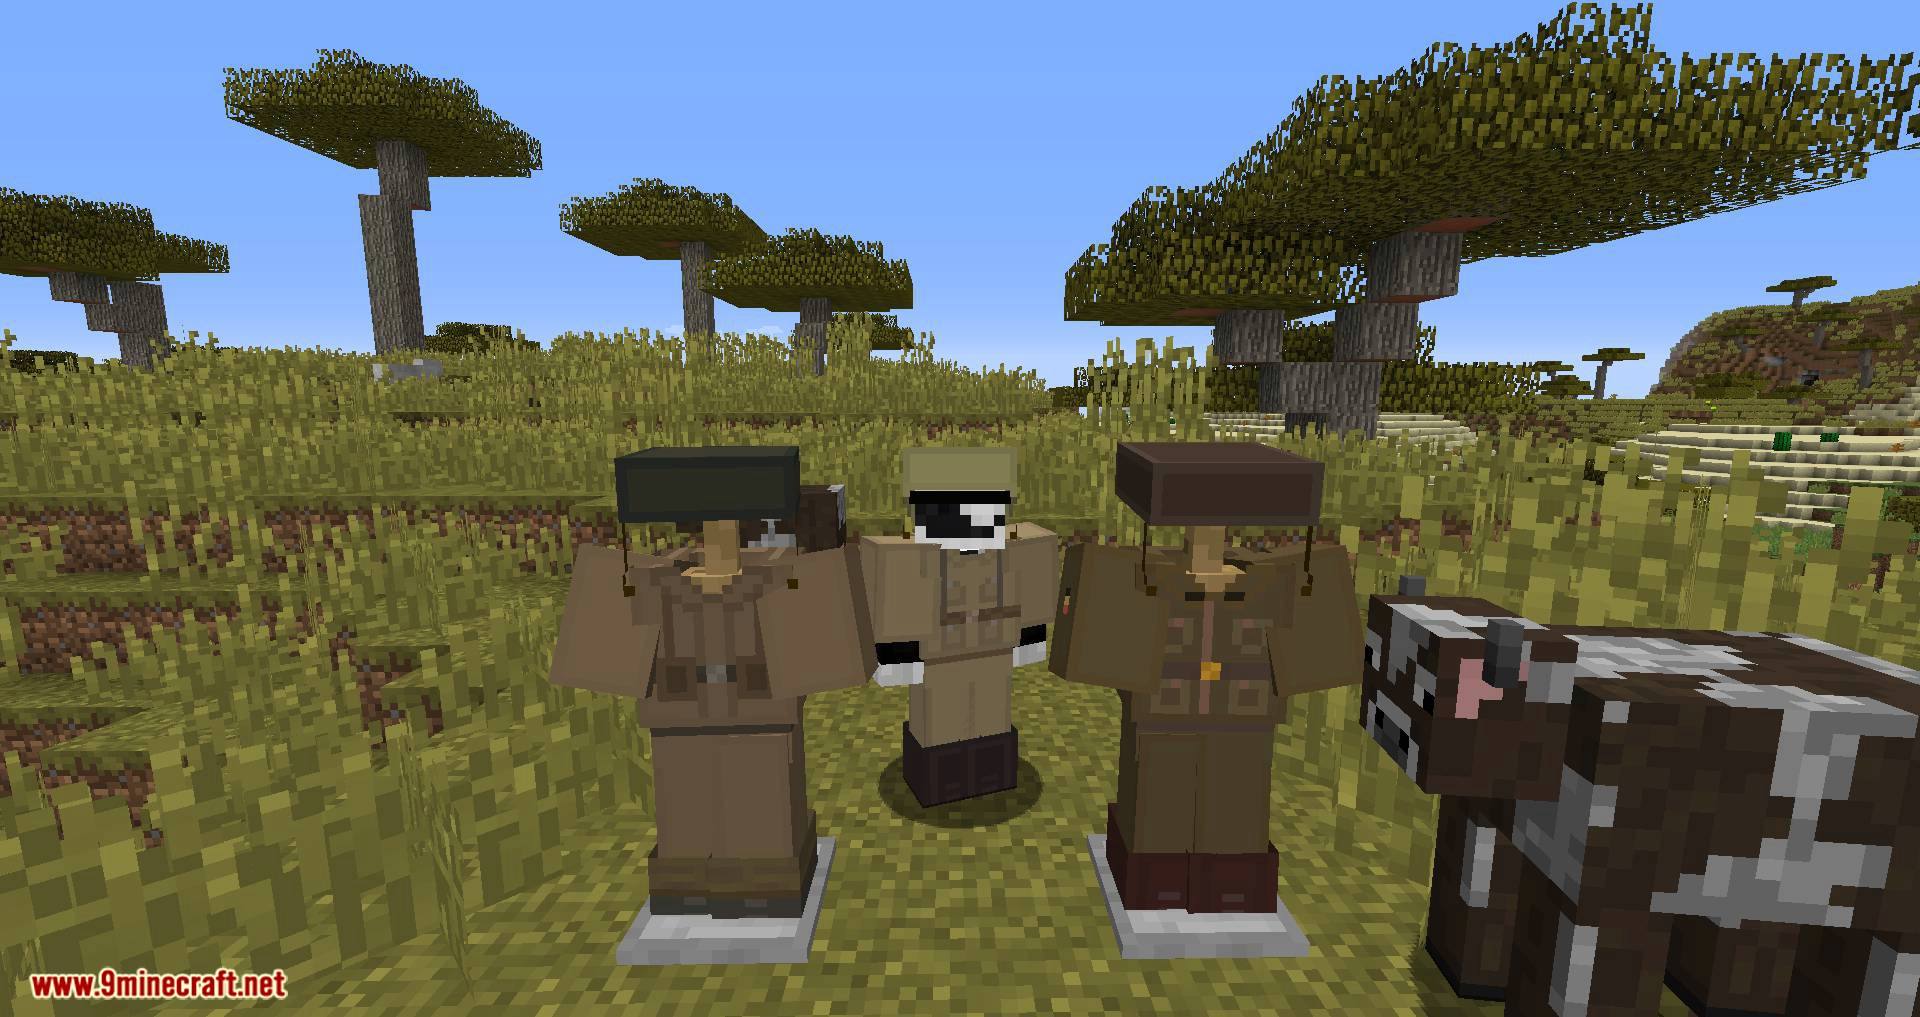 Flan_s Content Pack WW2 Armors mod for minecraft 09